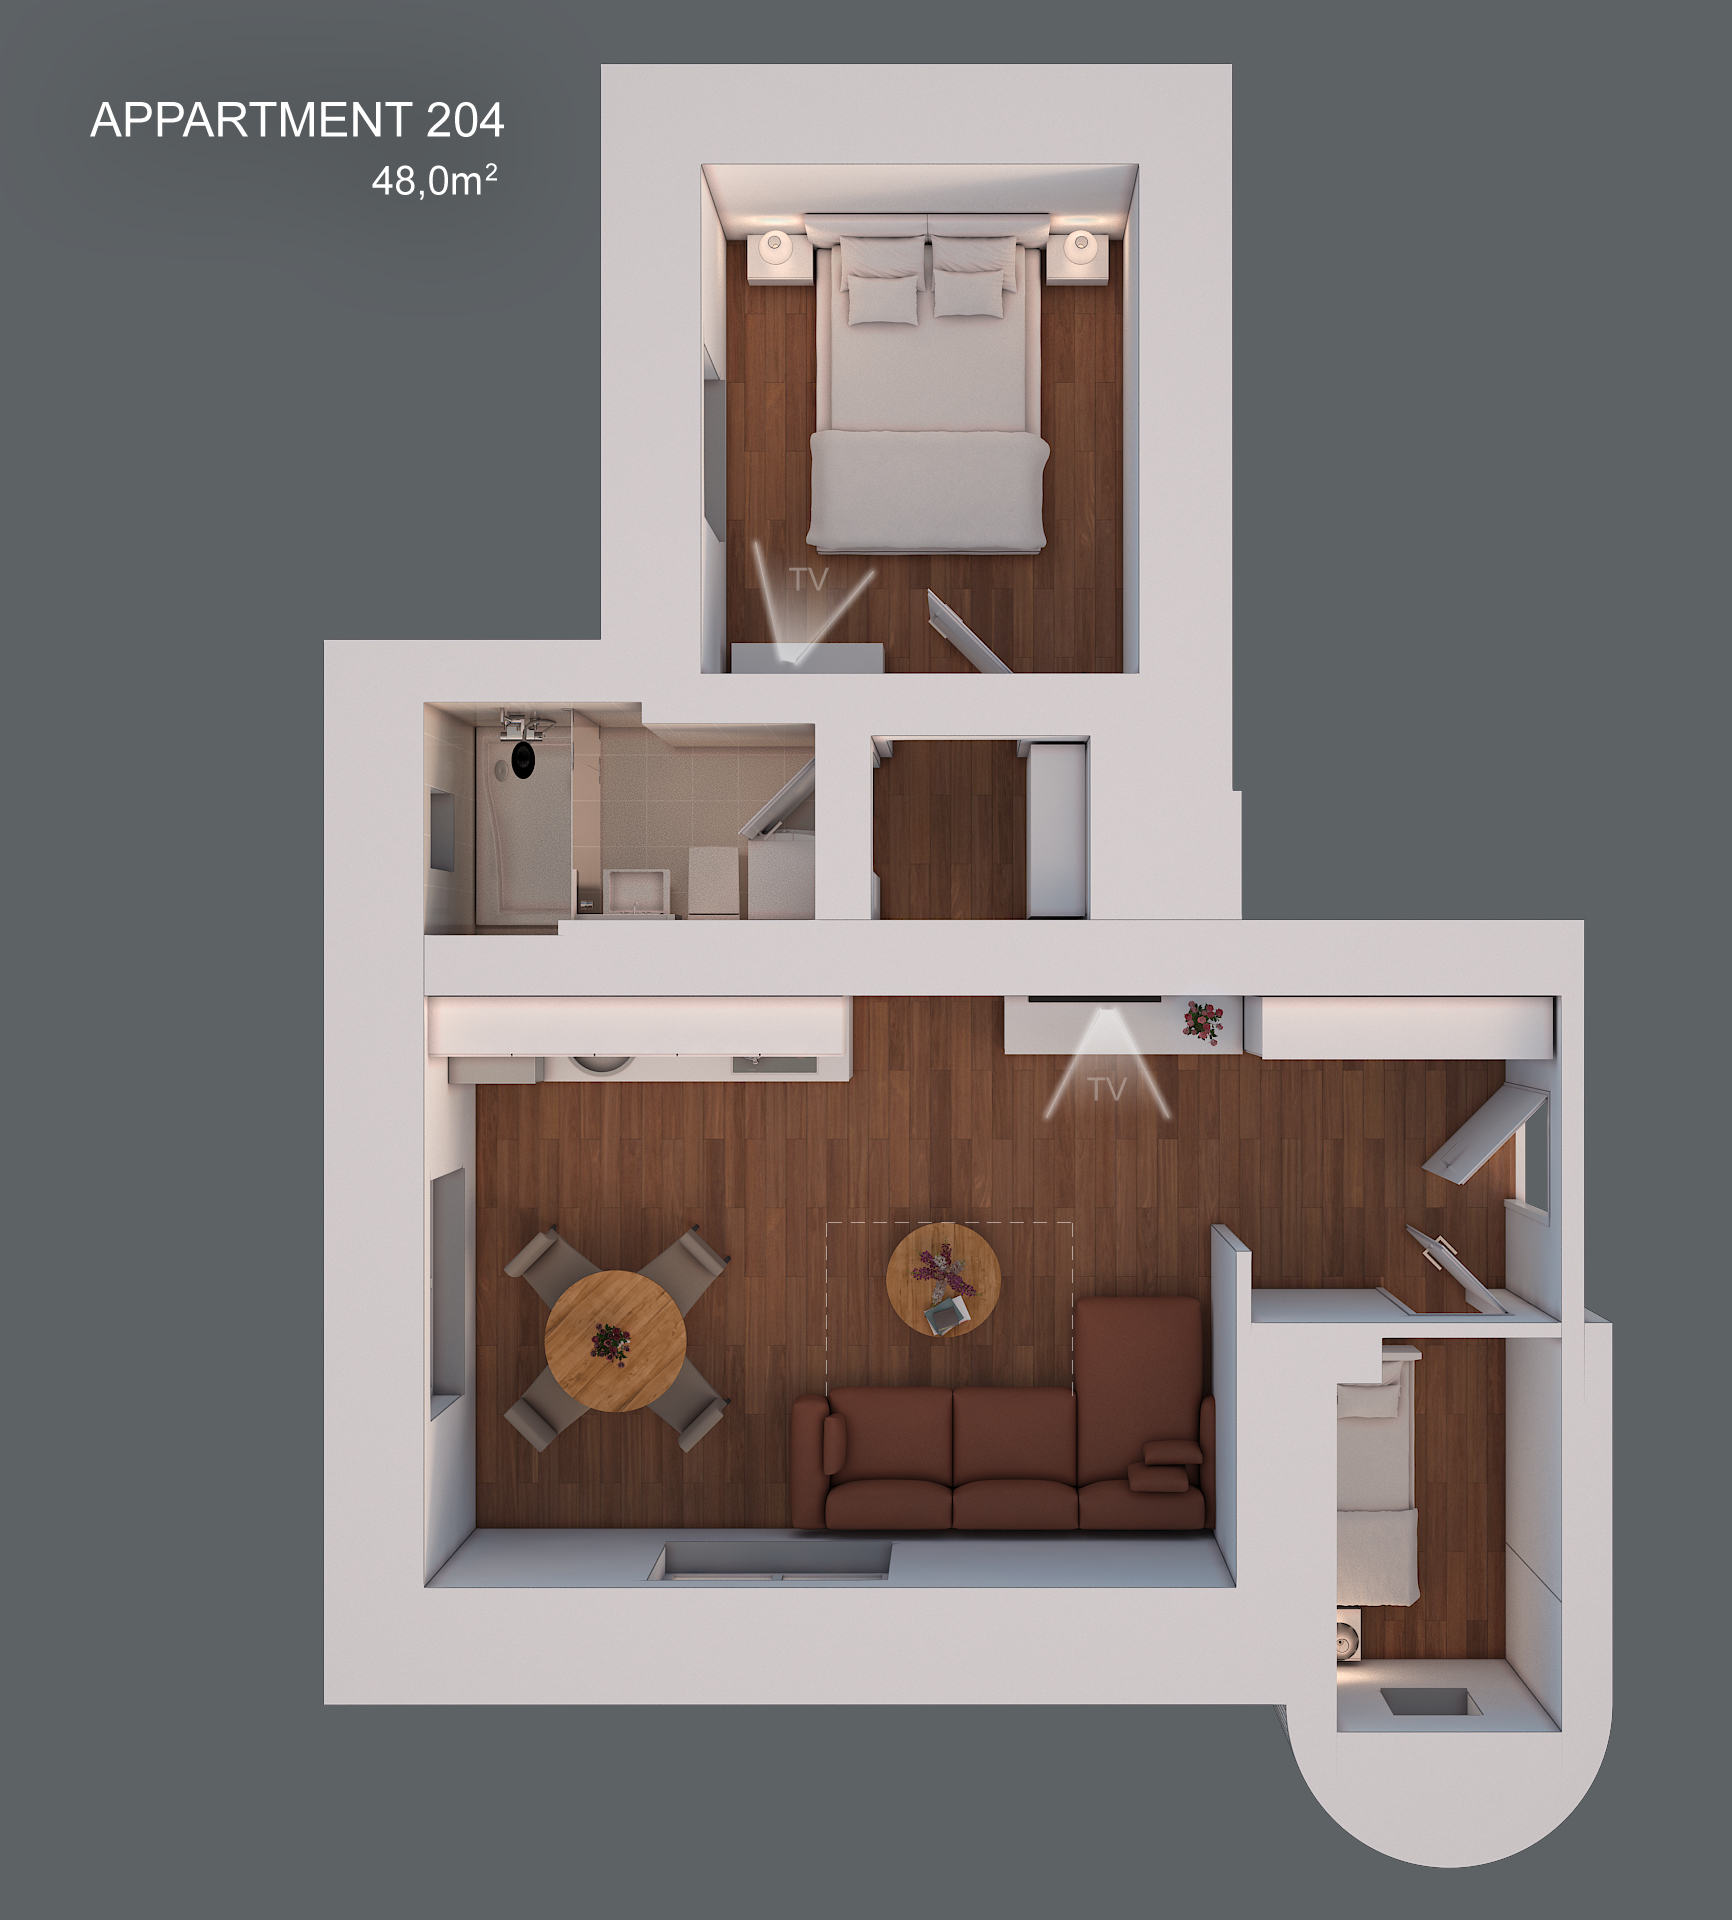 Apartment 204 layout